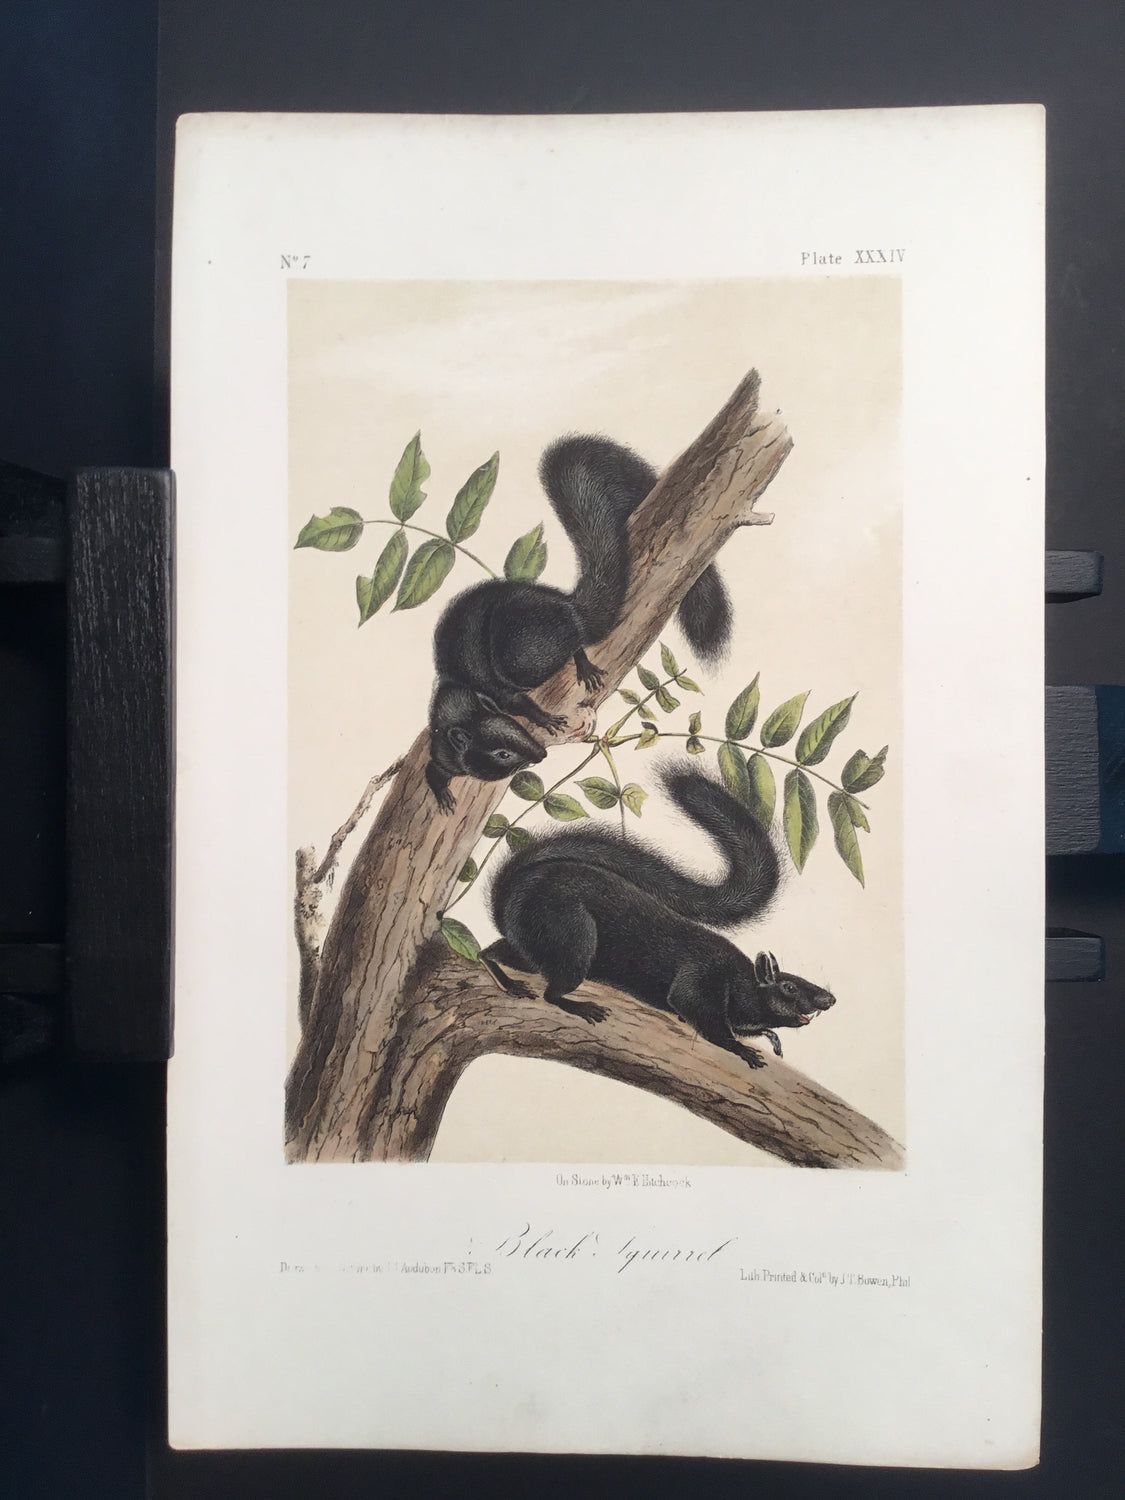 Lord-Hopkins Collection - Black Squirrel